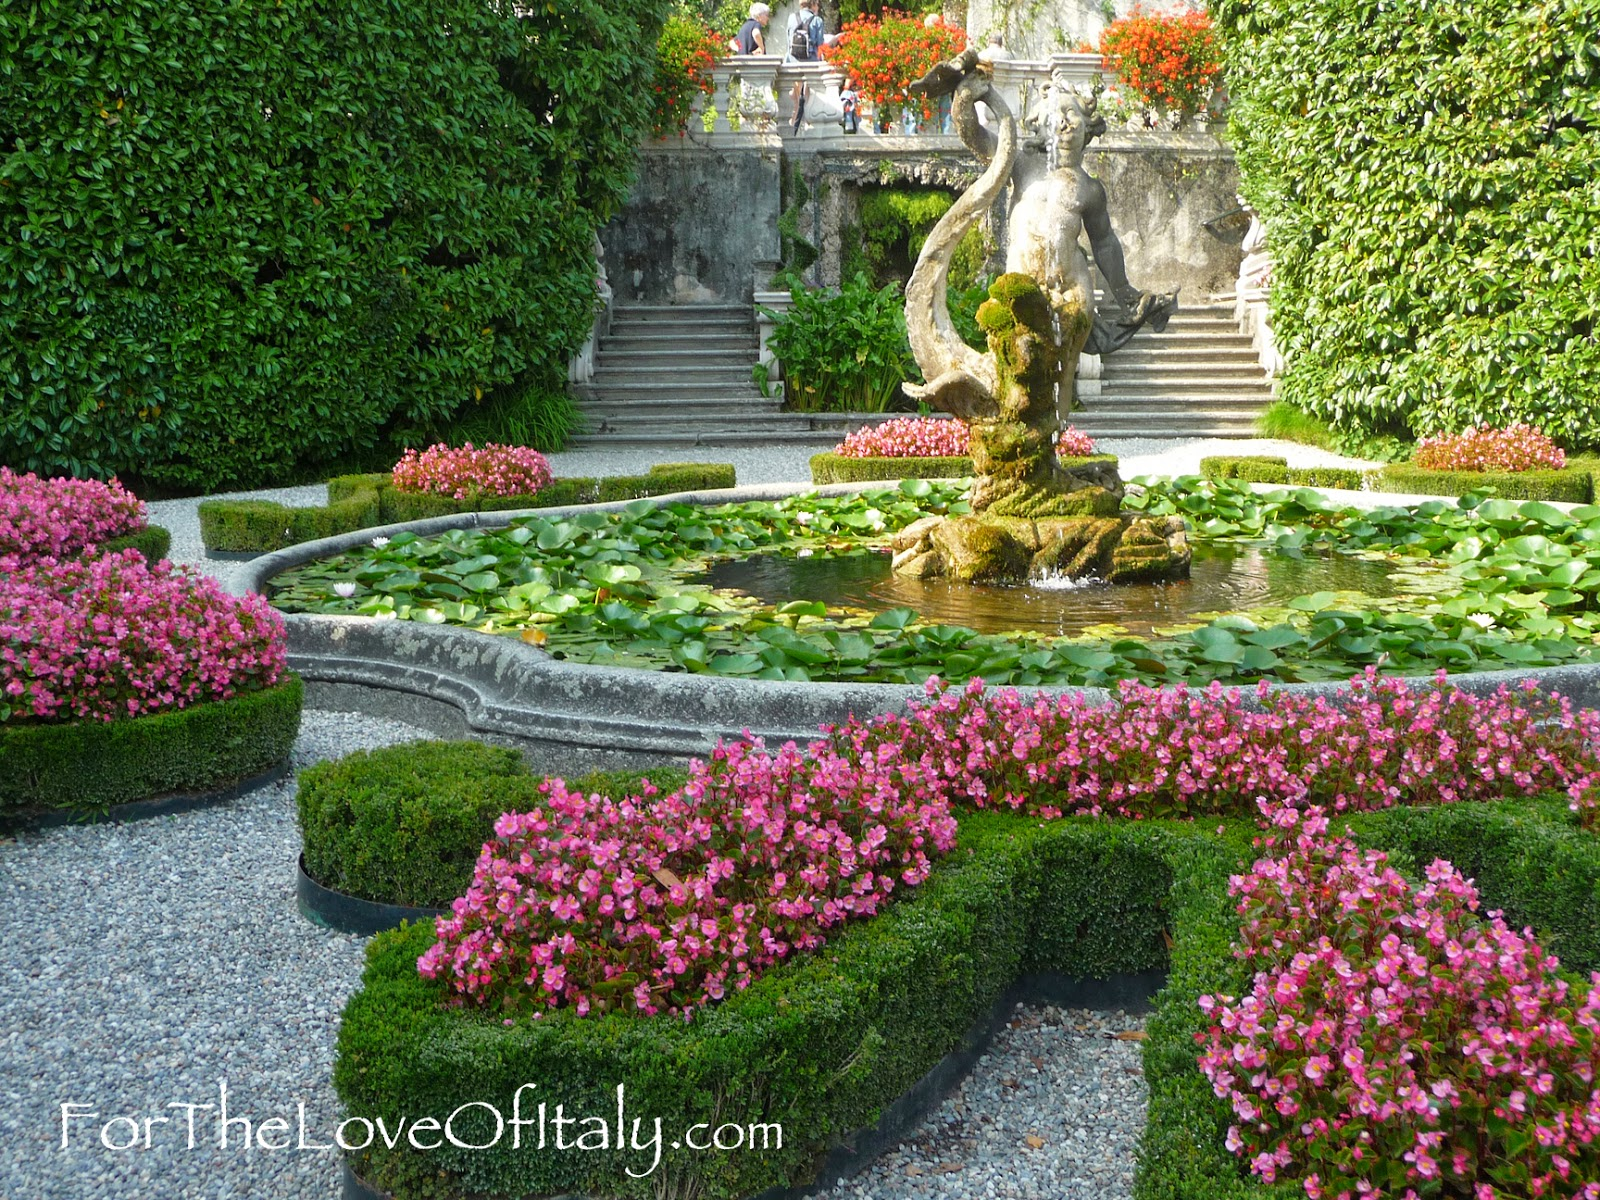 A Picture of the Garden of Villa Carlotta, Lake Como (Lombardy), Italy Lake Como, Italy © 2014 For The Love Of Italy